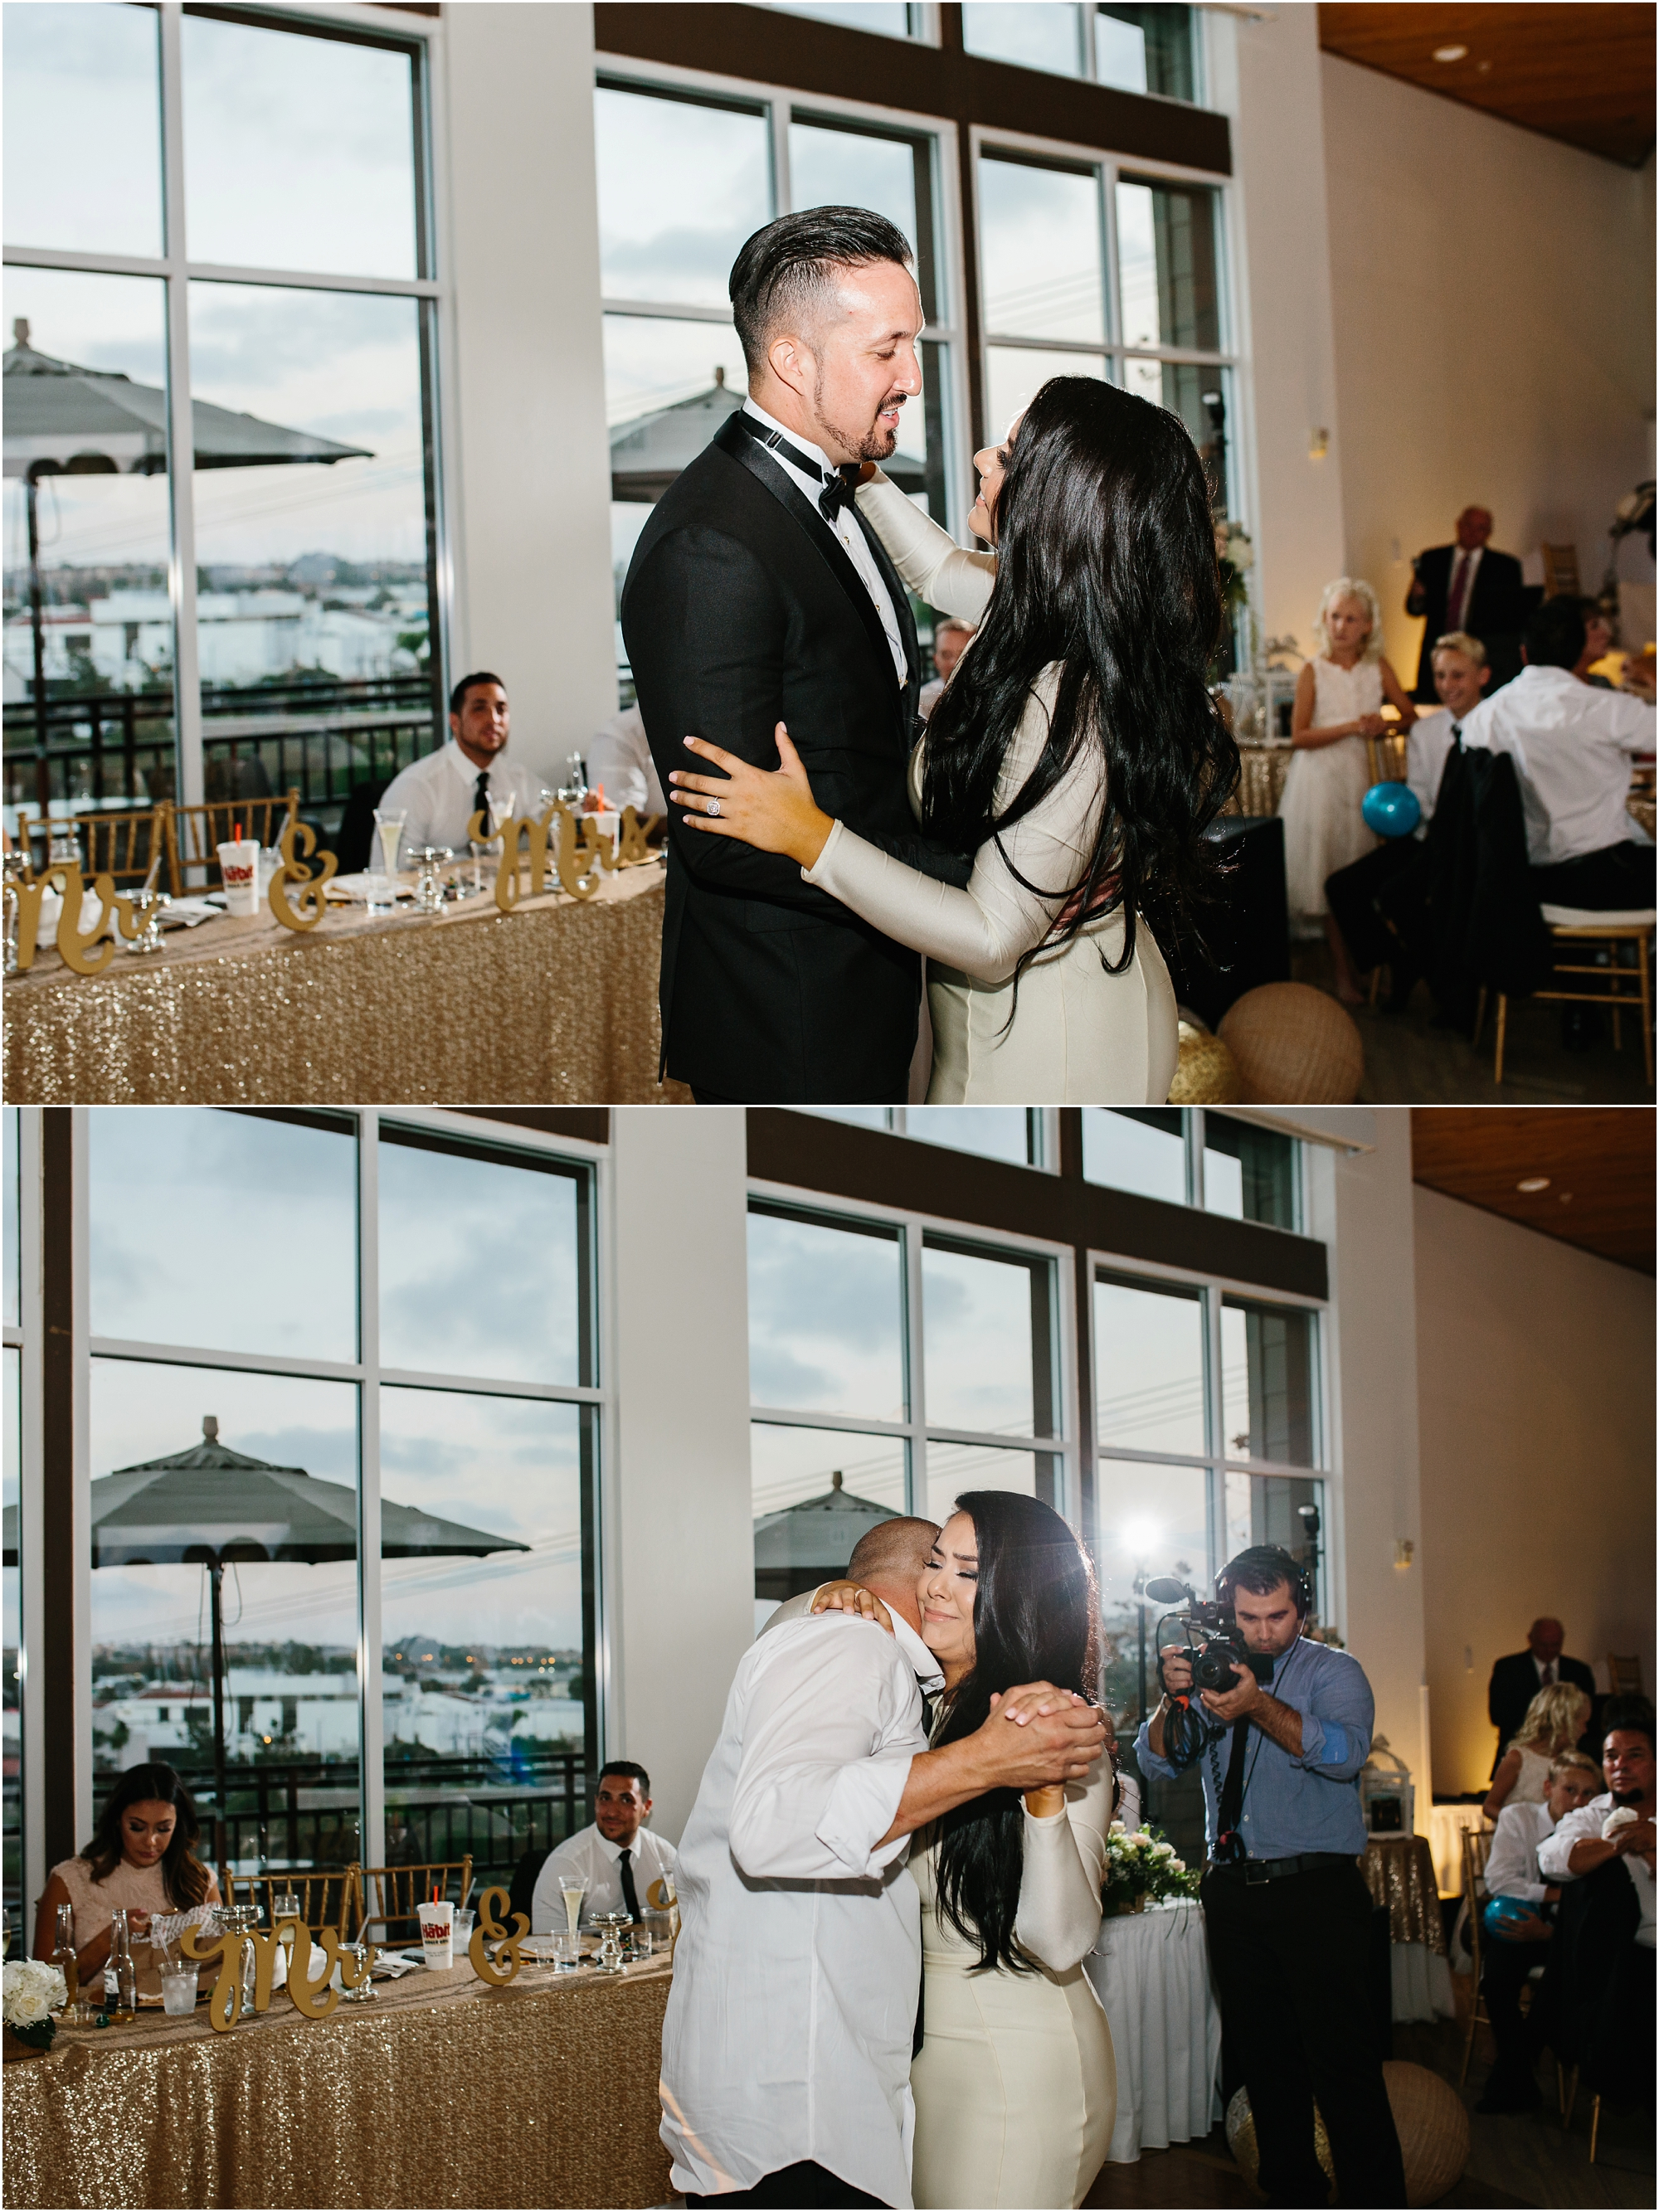 Reception in Carlsbad - http://brittneyhannonphotography.com